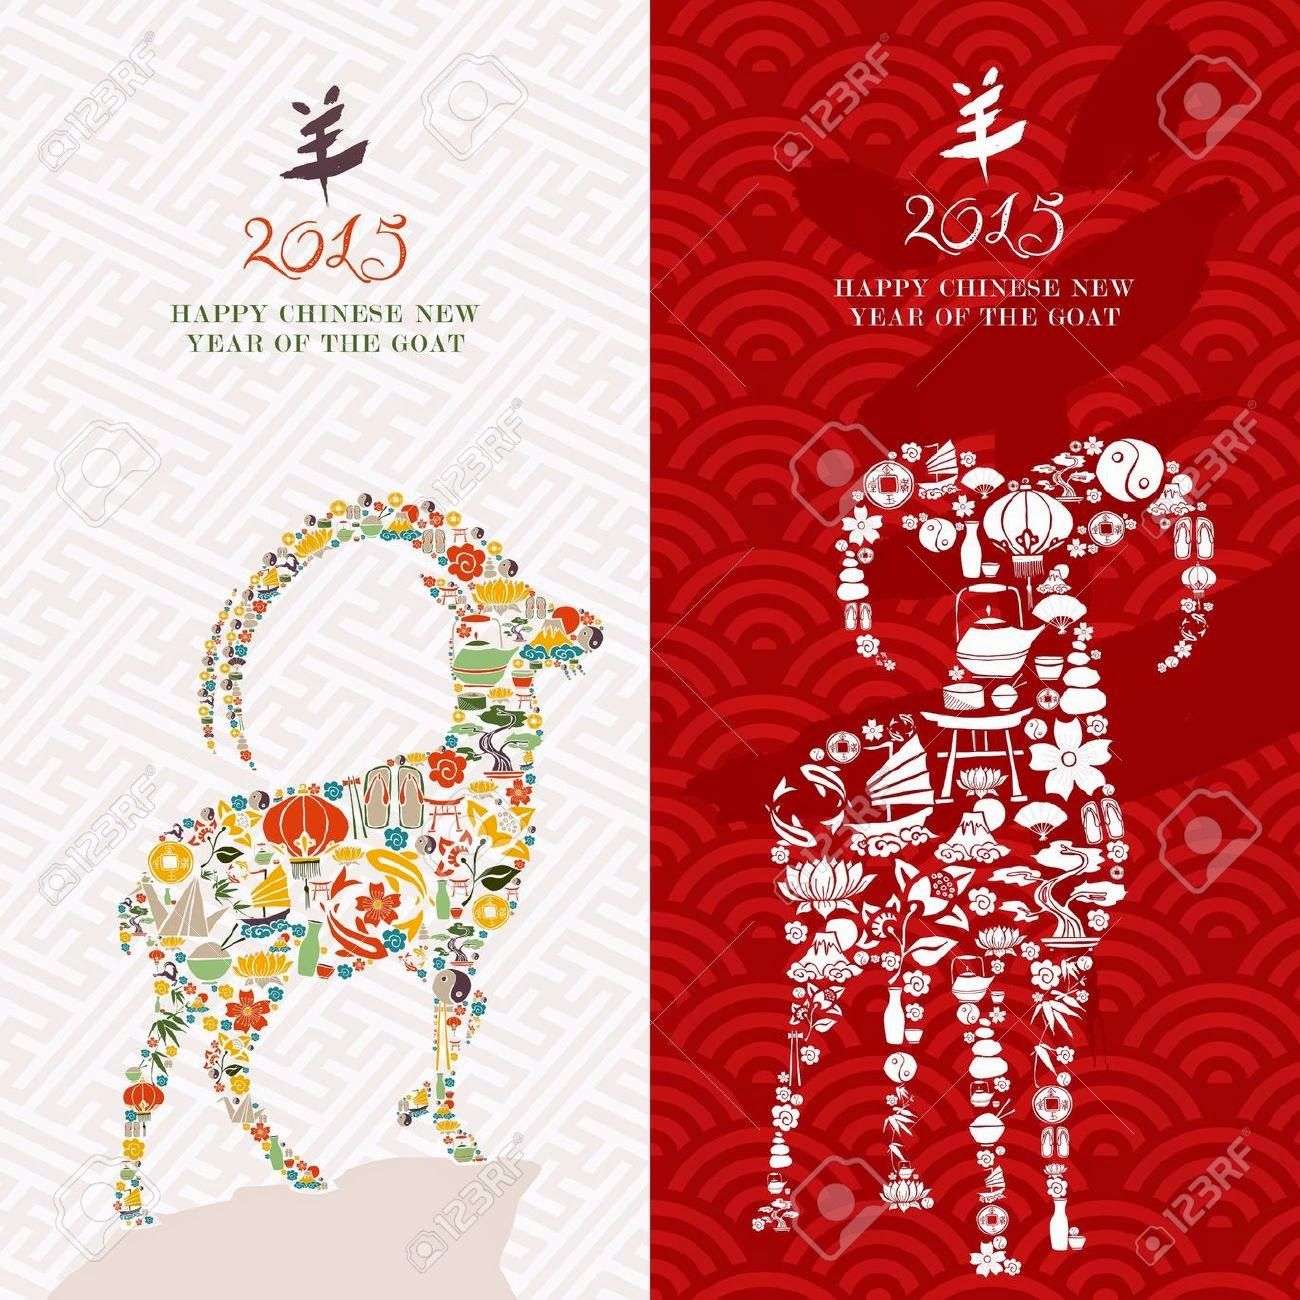 Chinese new year 2015 images hd wallpapers pictures greetings pics chinese new year 2015 greetings cards images pics you can download whichever you like kristyandbryce Choice Image